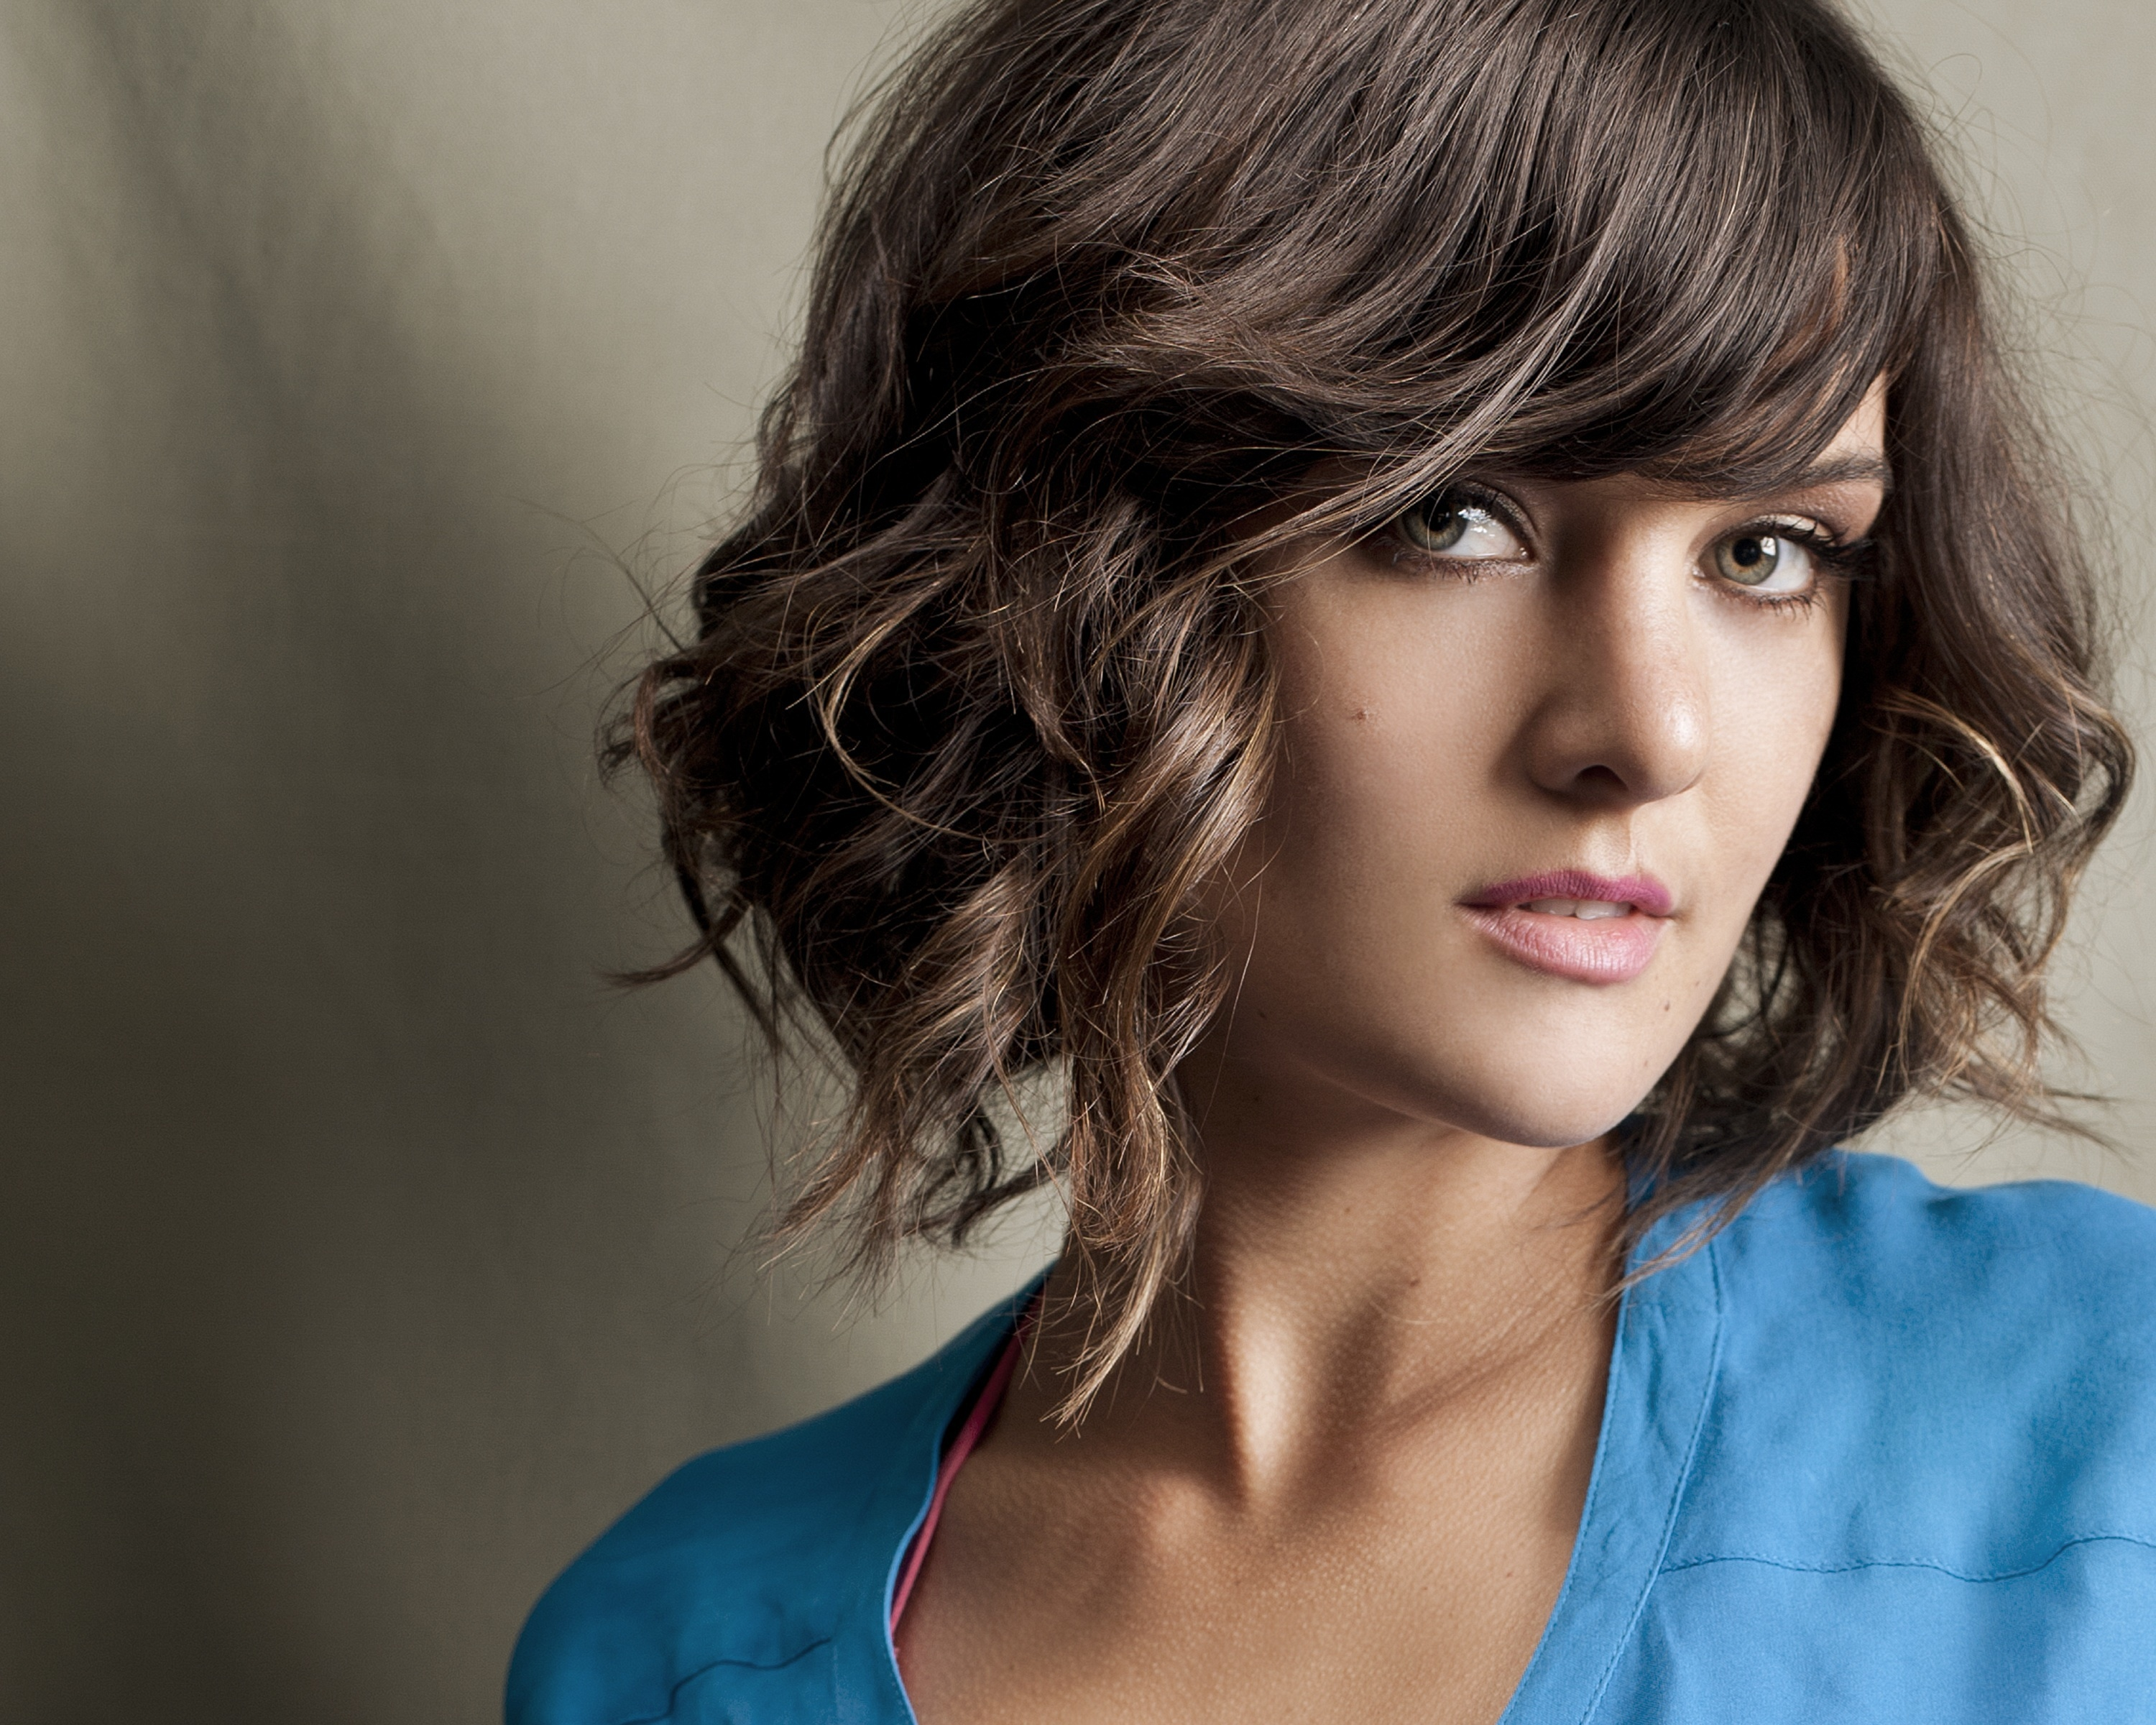 frankie shaw wallpaper background hd 125